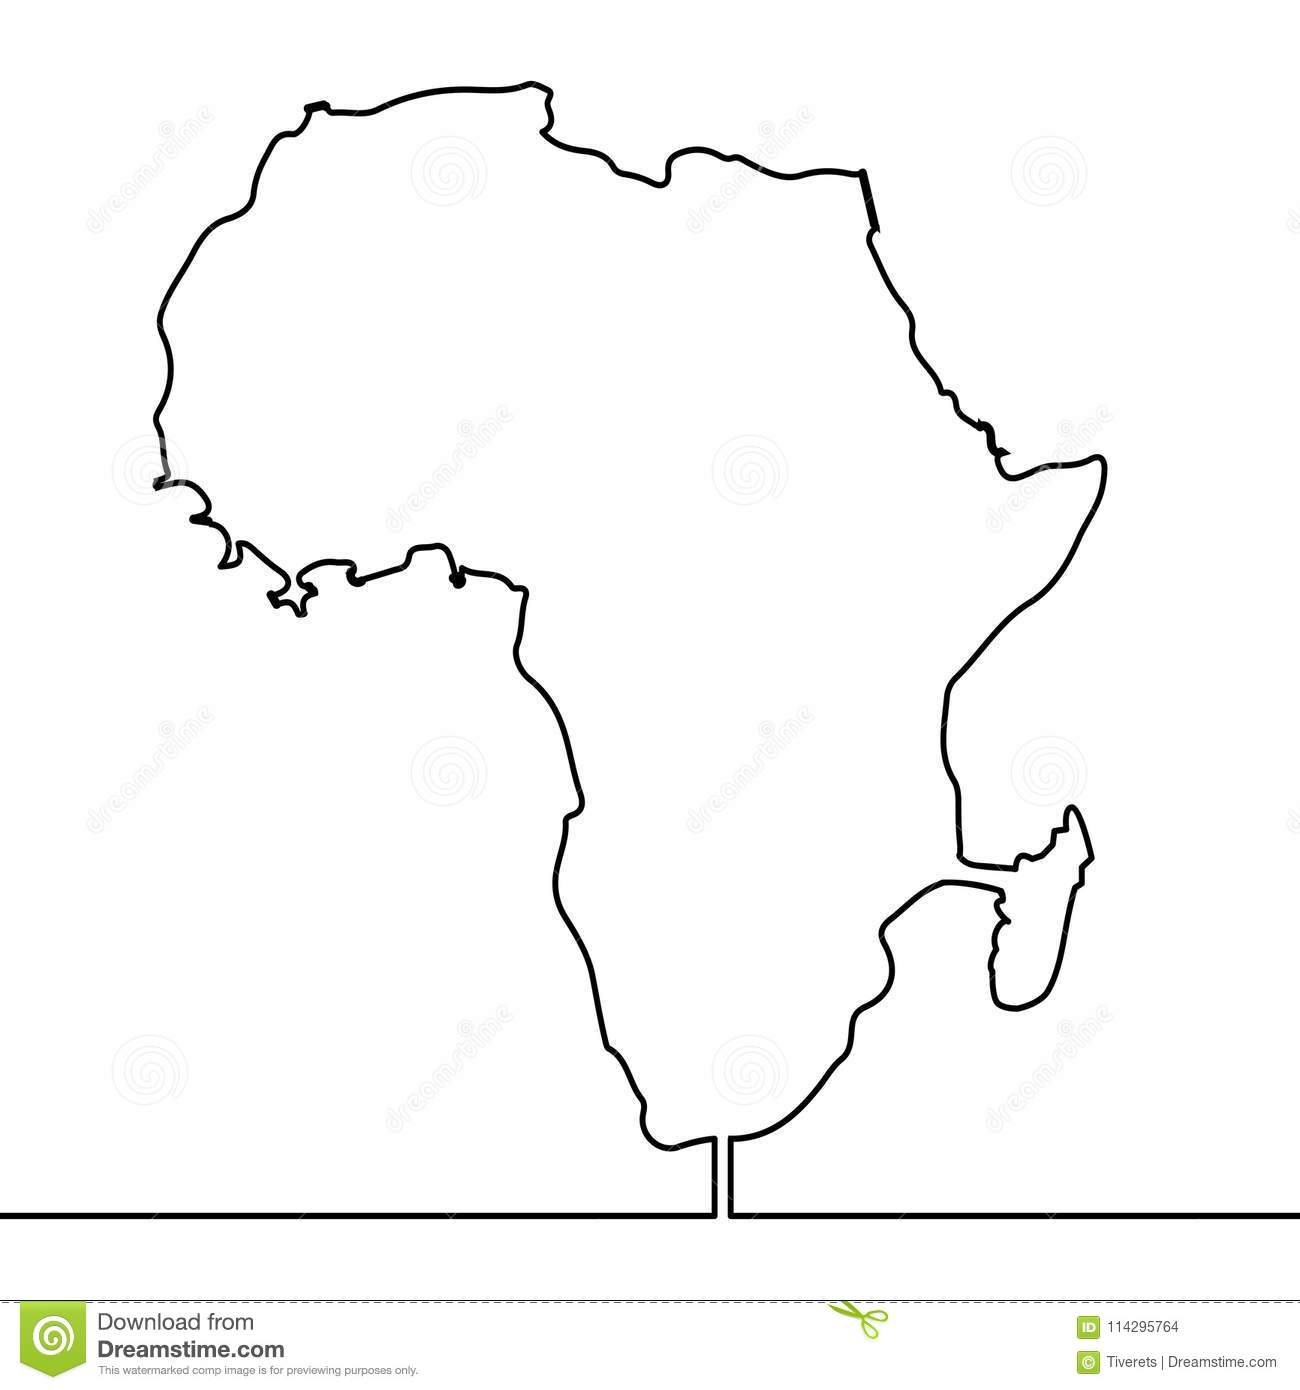 Map Of Africa Art.Single Continuous Line Art Map Of Africa Vector Stock Vector